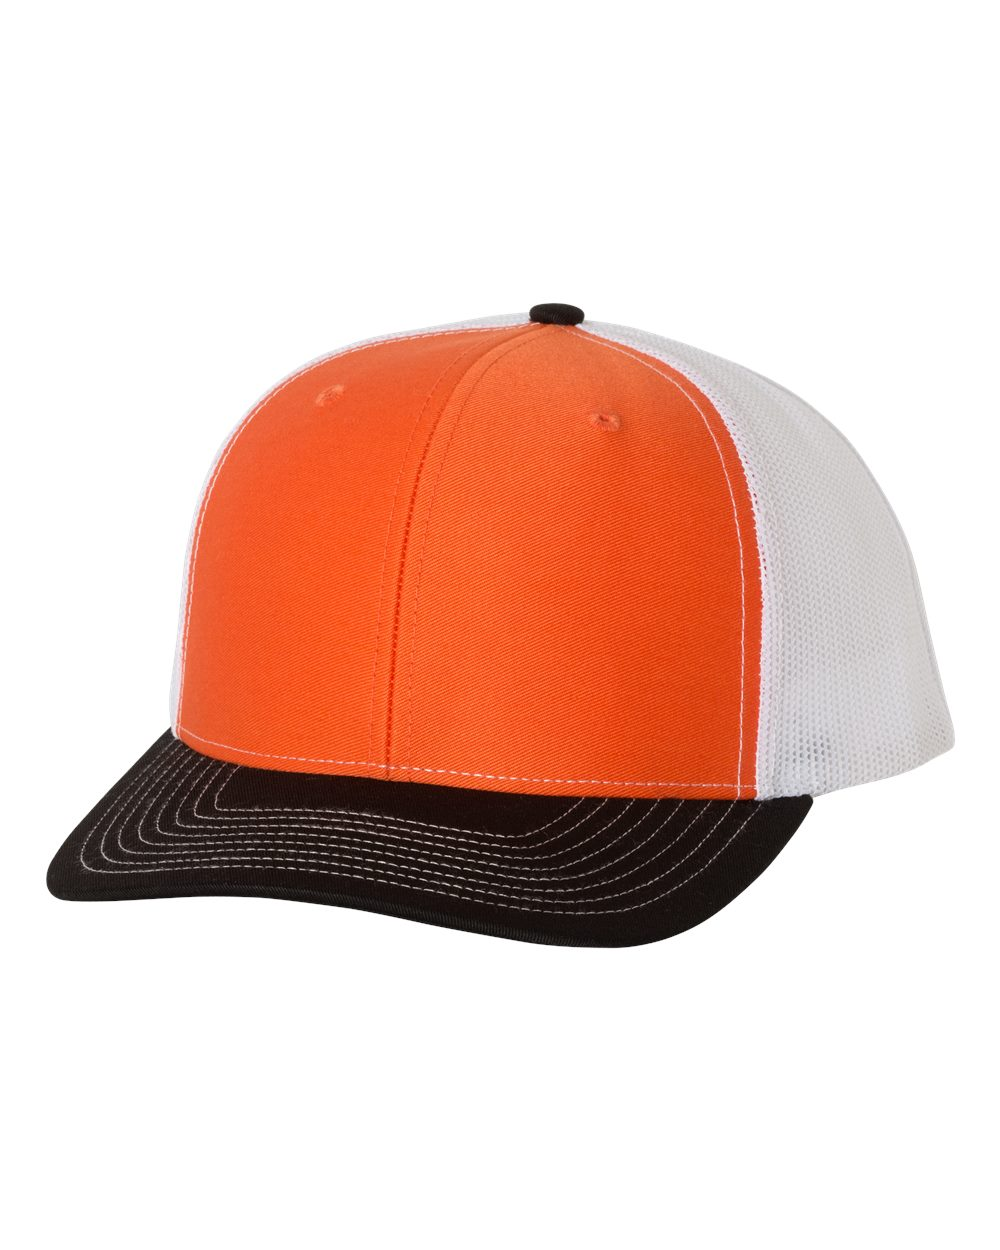 Orange / White / Black